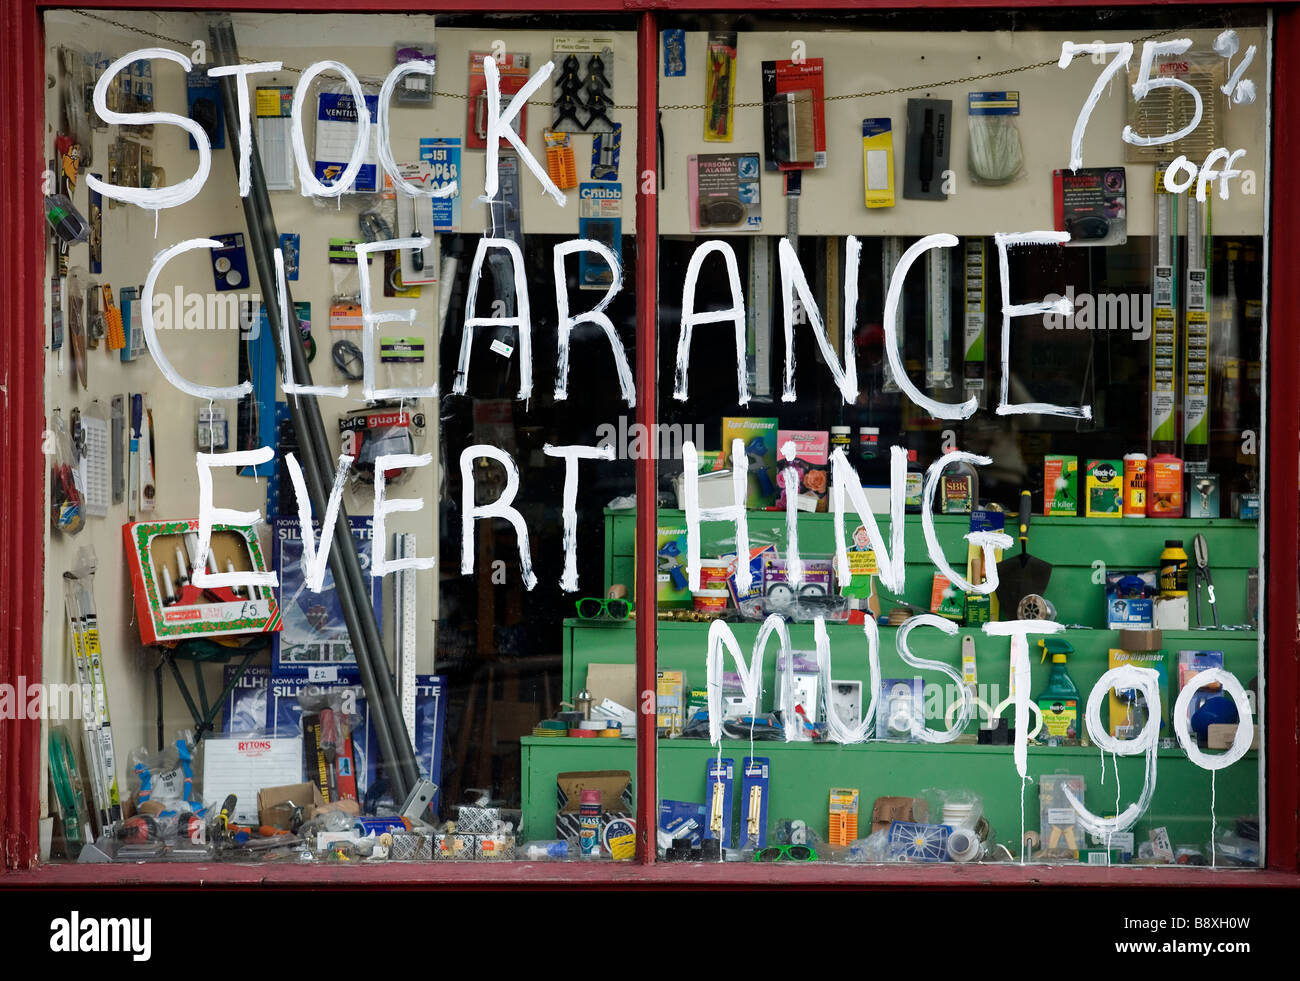 'Stock Clearance' sign in a shop window in London as the recession hits the United Kingdom, 2009. - Stock Image